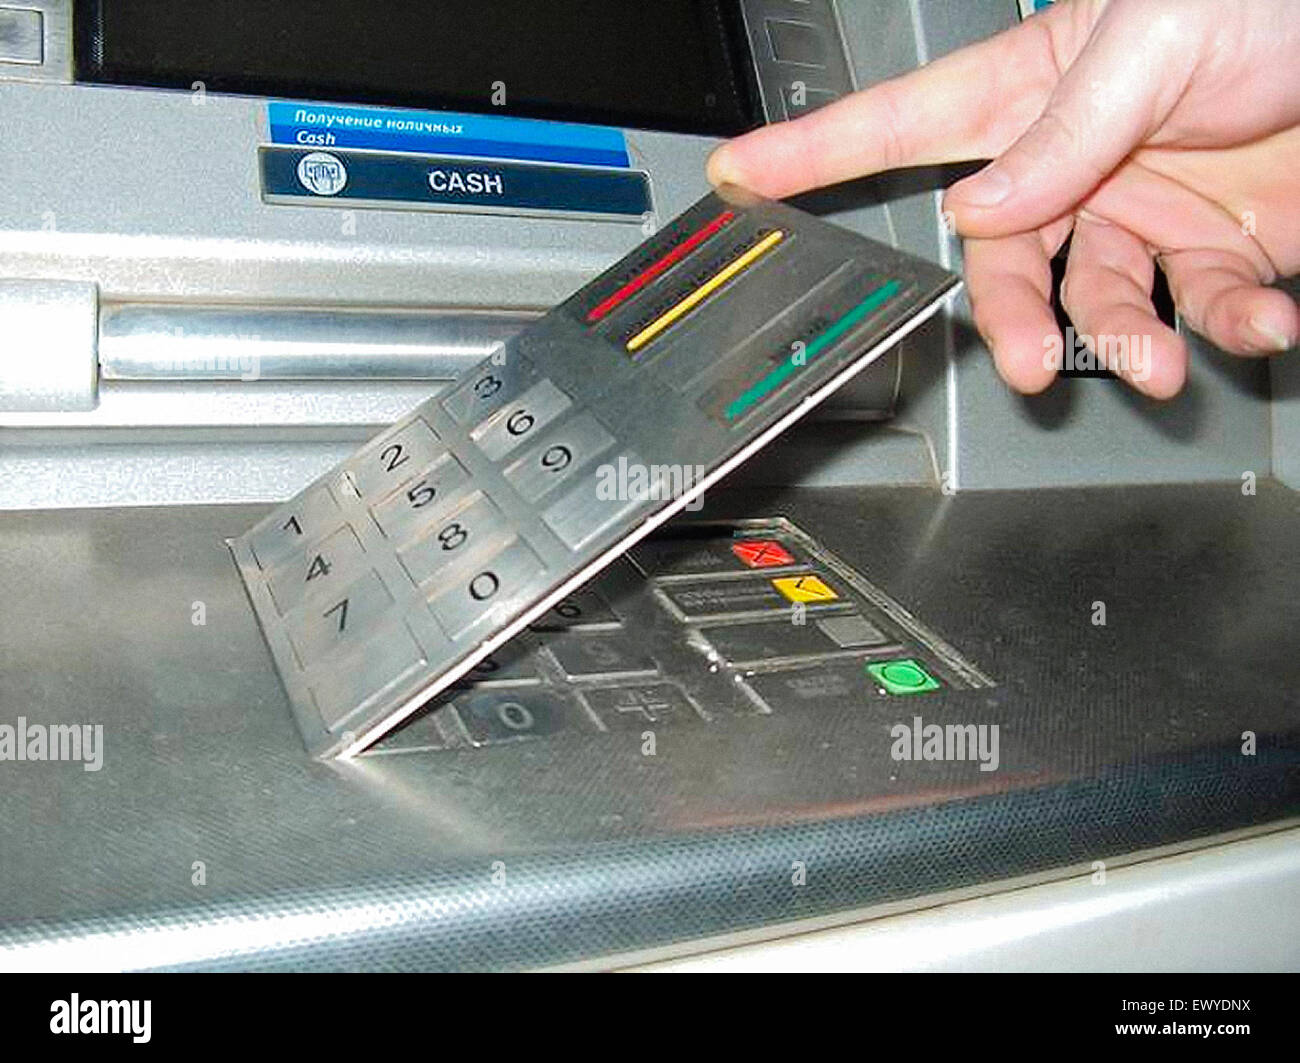 On Stock Cash False Machine Skimming atm Overlay Keyboard Alamy For 84811382 Card Photo Used -